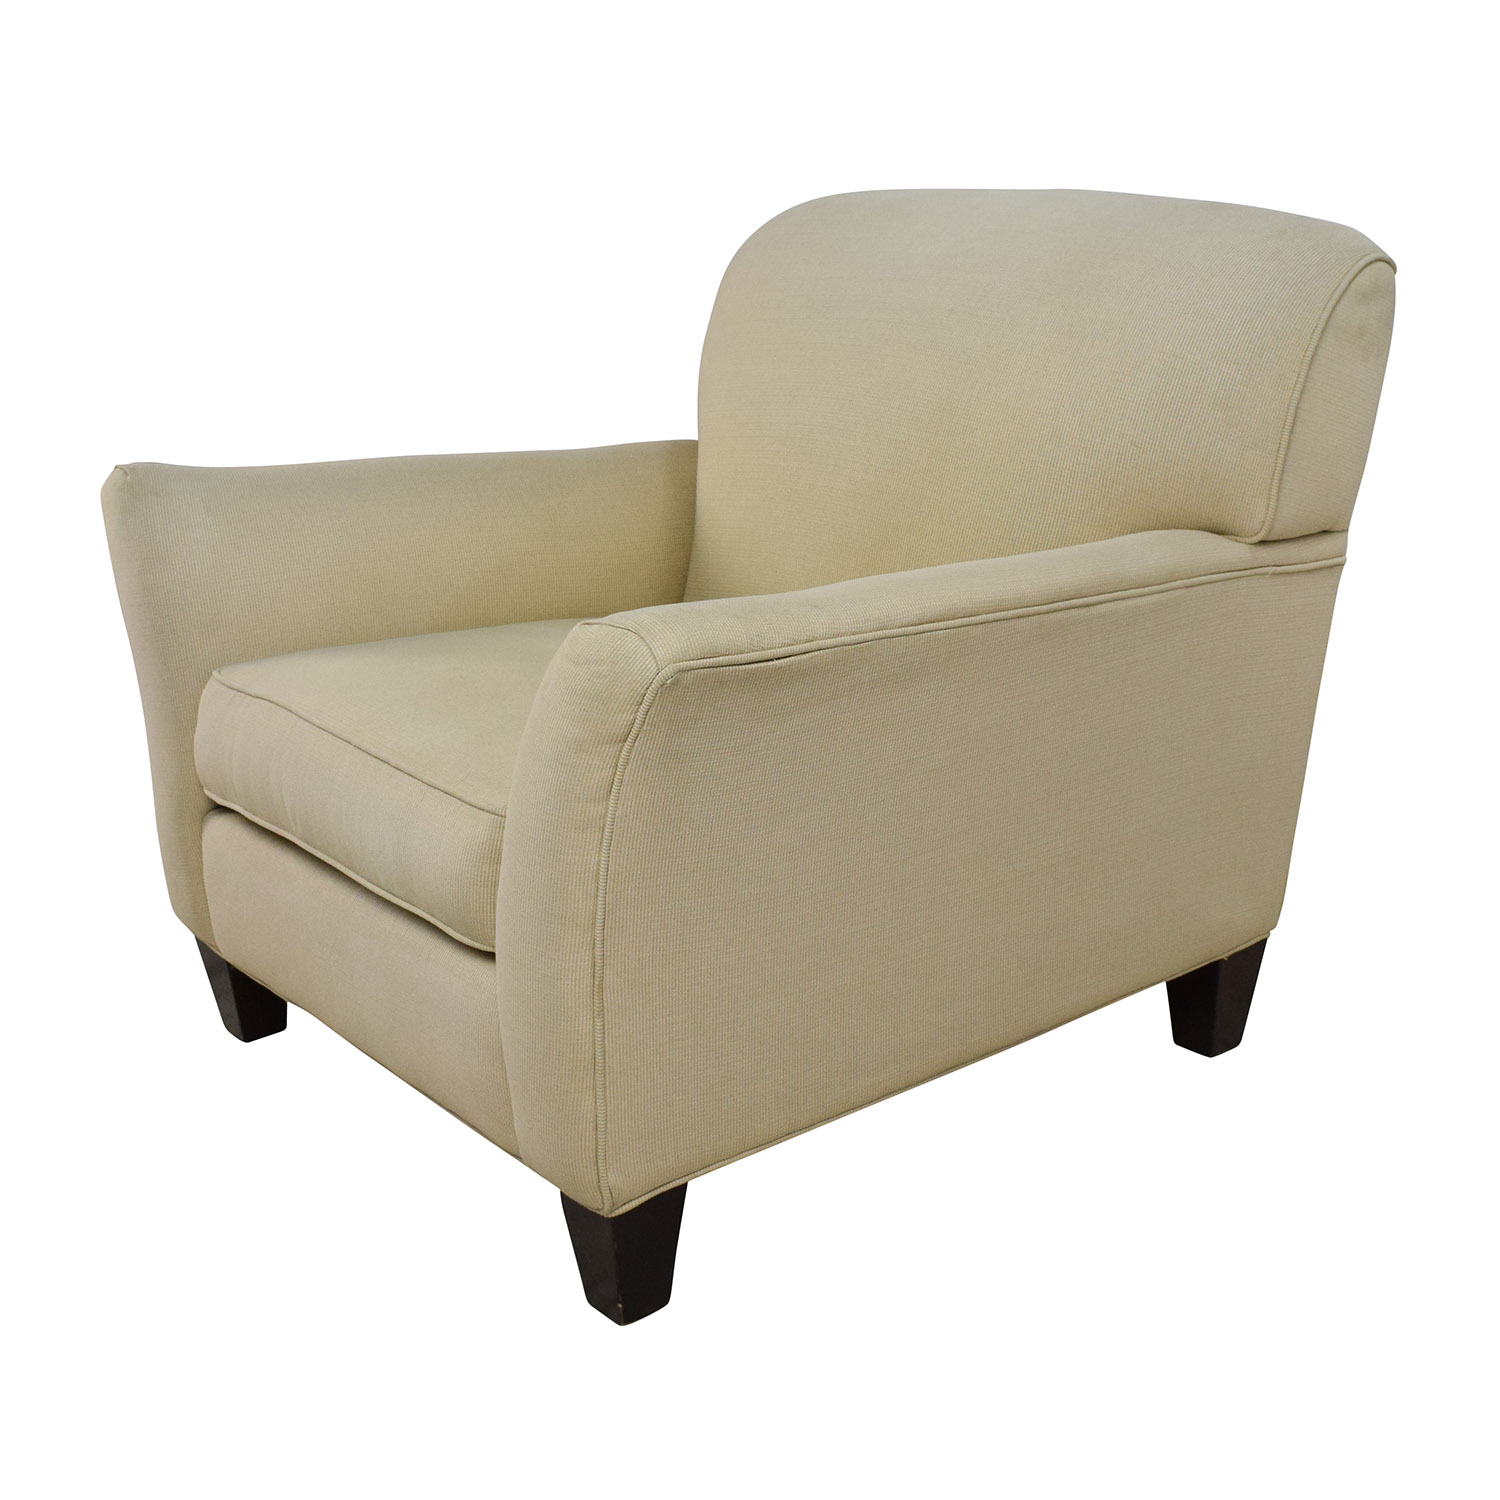 90 Off Rowe Furniture Rowe Furniture Capri Beige Sofa